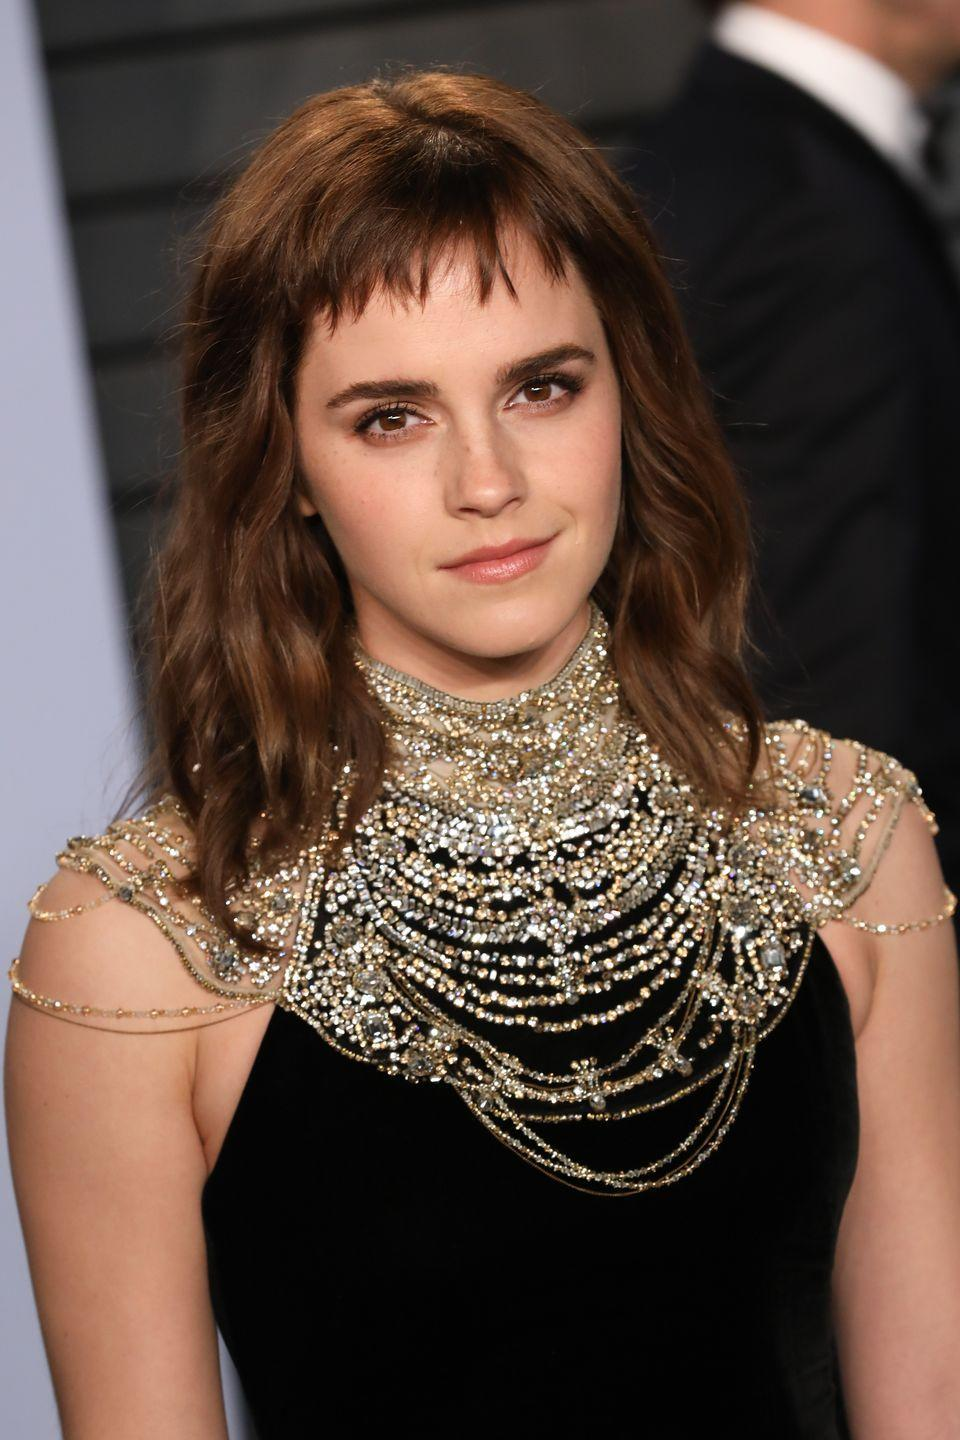 <p>Emma rose to fame as <em>Harry Potter</em>'s Hermoine Granger, a role she took on when she was 11 years old. Since then, she's done campaigns for Burberry and Lancome, and also works as a UN Women Goodwill ambassador. </p>